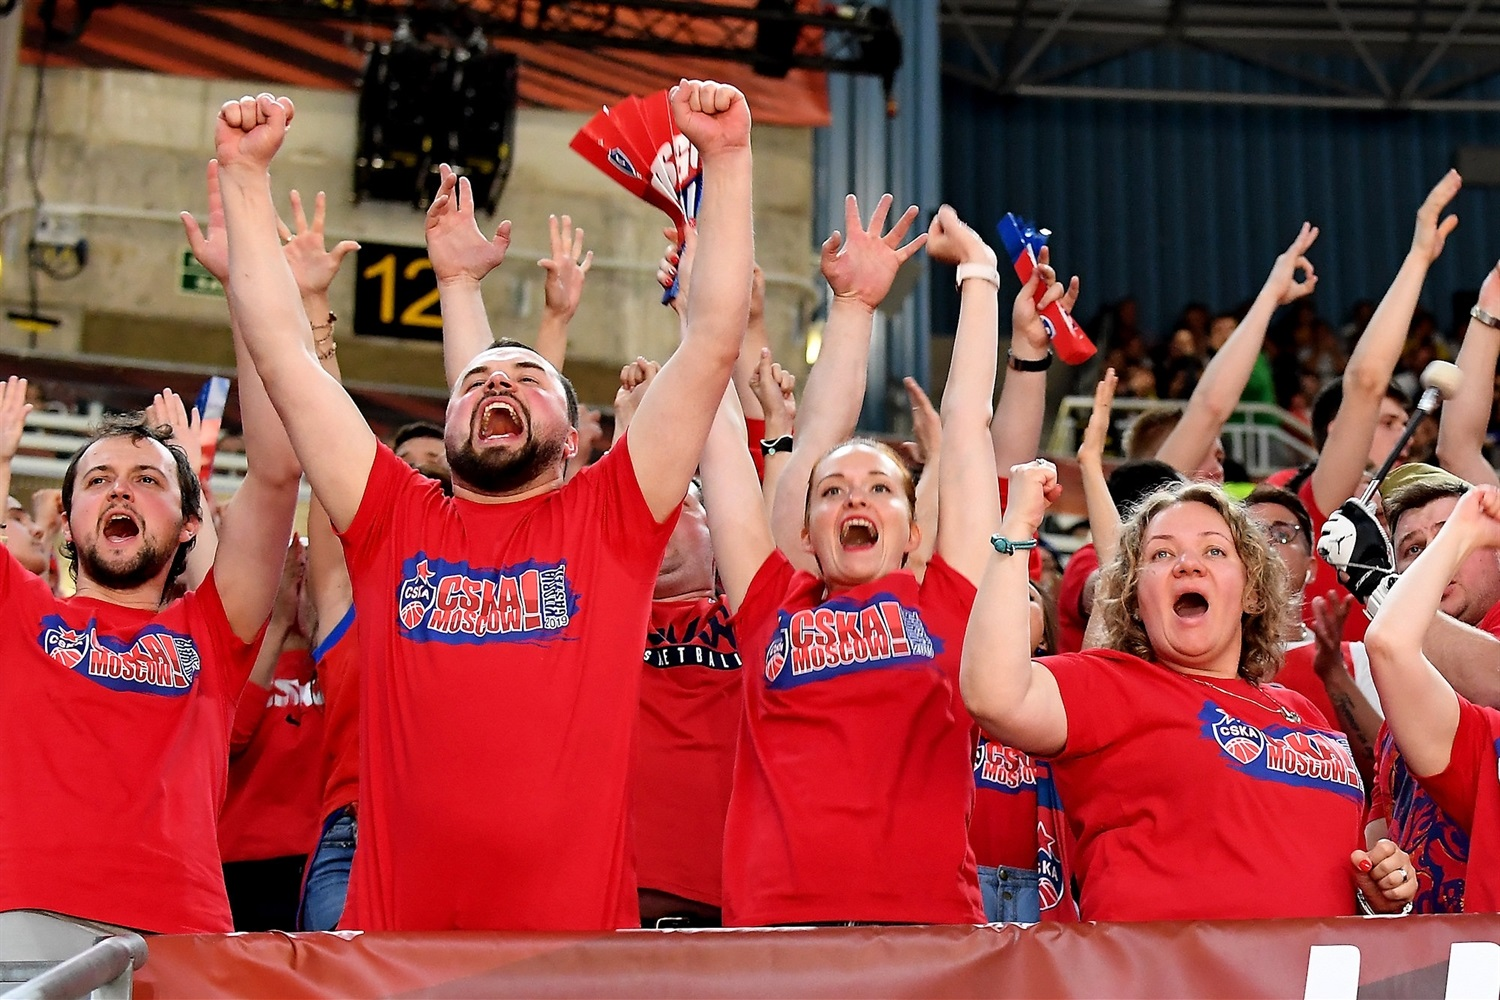 Fans celebrates - CSKA Moscow - Final Four Vitoria-Gasteiz 2019 - EB18